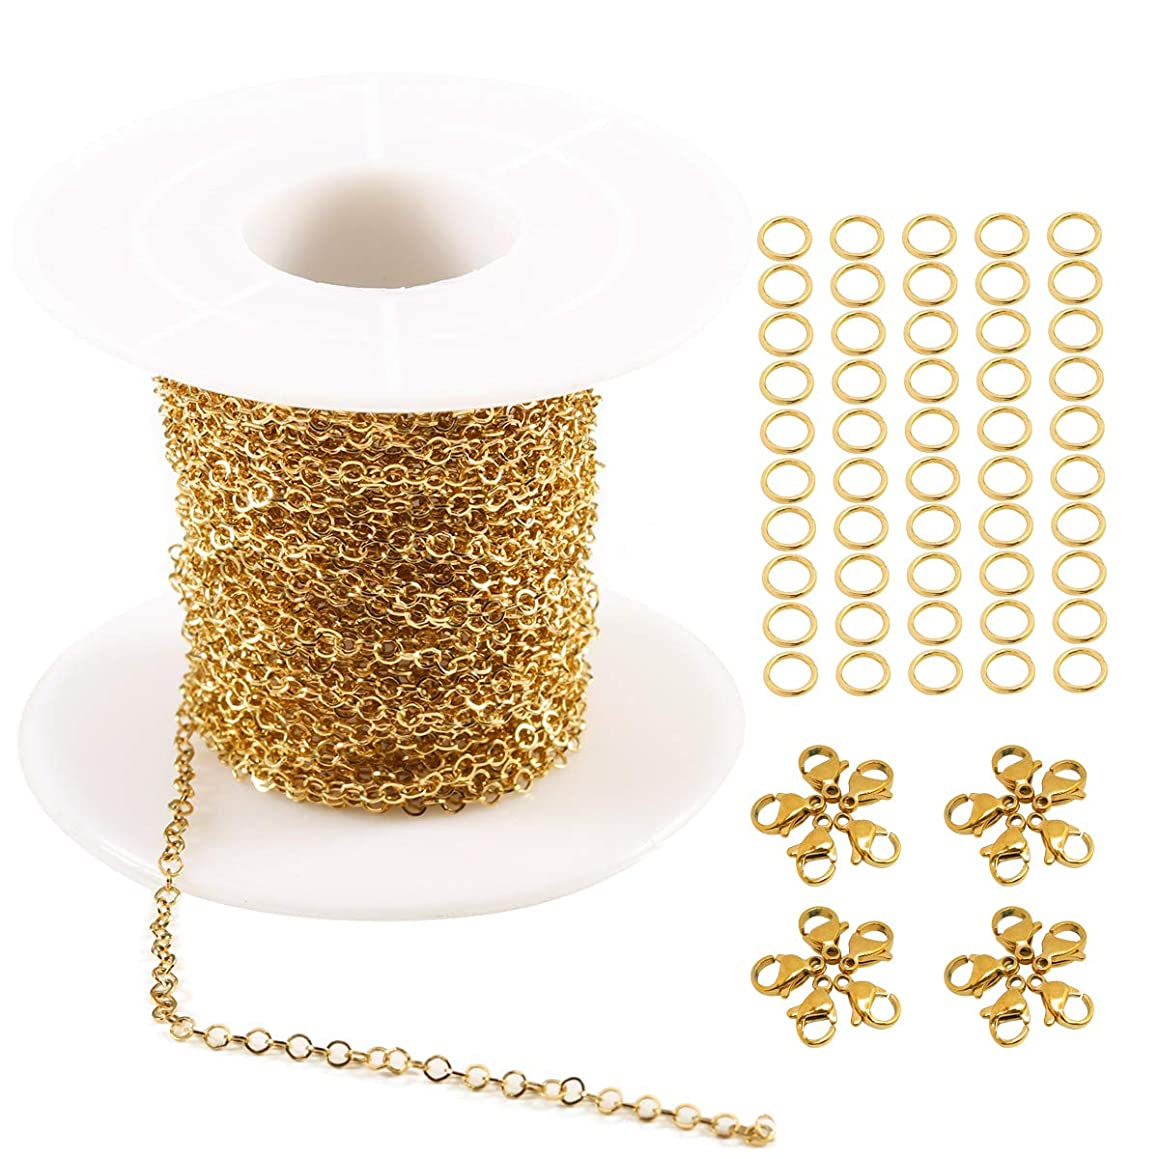 Tiparts 33 feet 18K Gold Plated Circular Rolo Cable Chains Stainless Steel Jewelry Making Chains Necklace Bulk with 20 Lobster Clasps and 50 Jump Rings (Gold, Chain Width 2mm+20pcs Clasps+50 Rings)